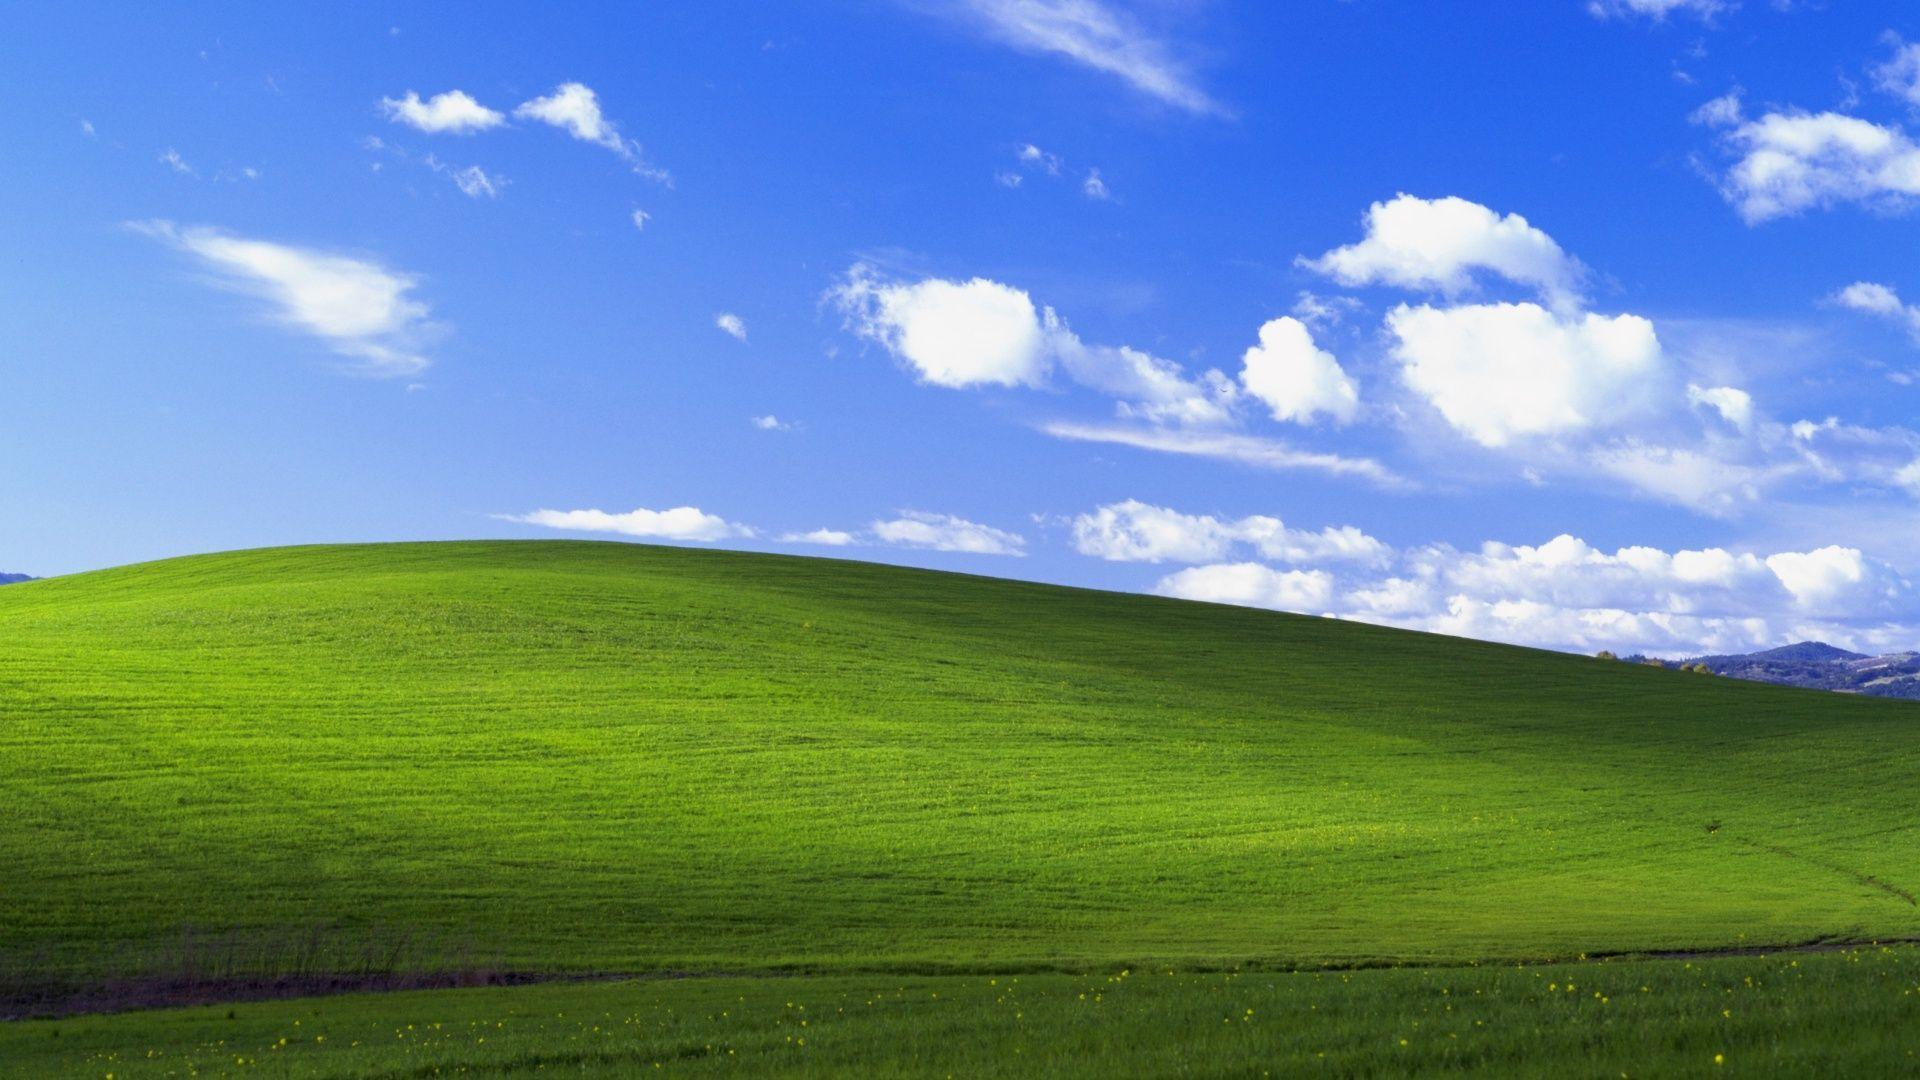 windows wallpaper 1920x1080 ws - photo #47